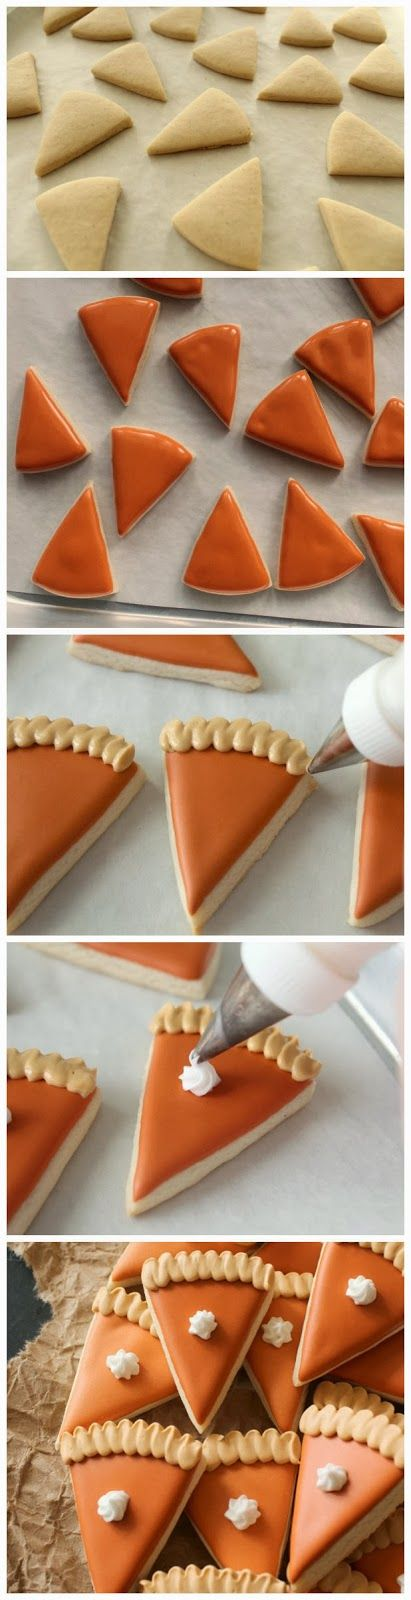 Mini-Pumpkin Pie Cookies: Adorable!!!!